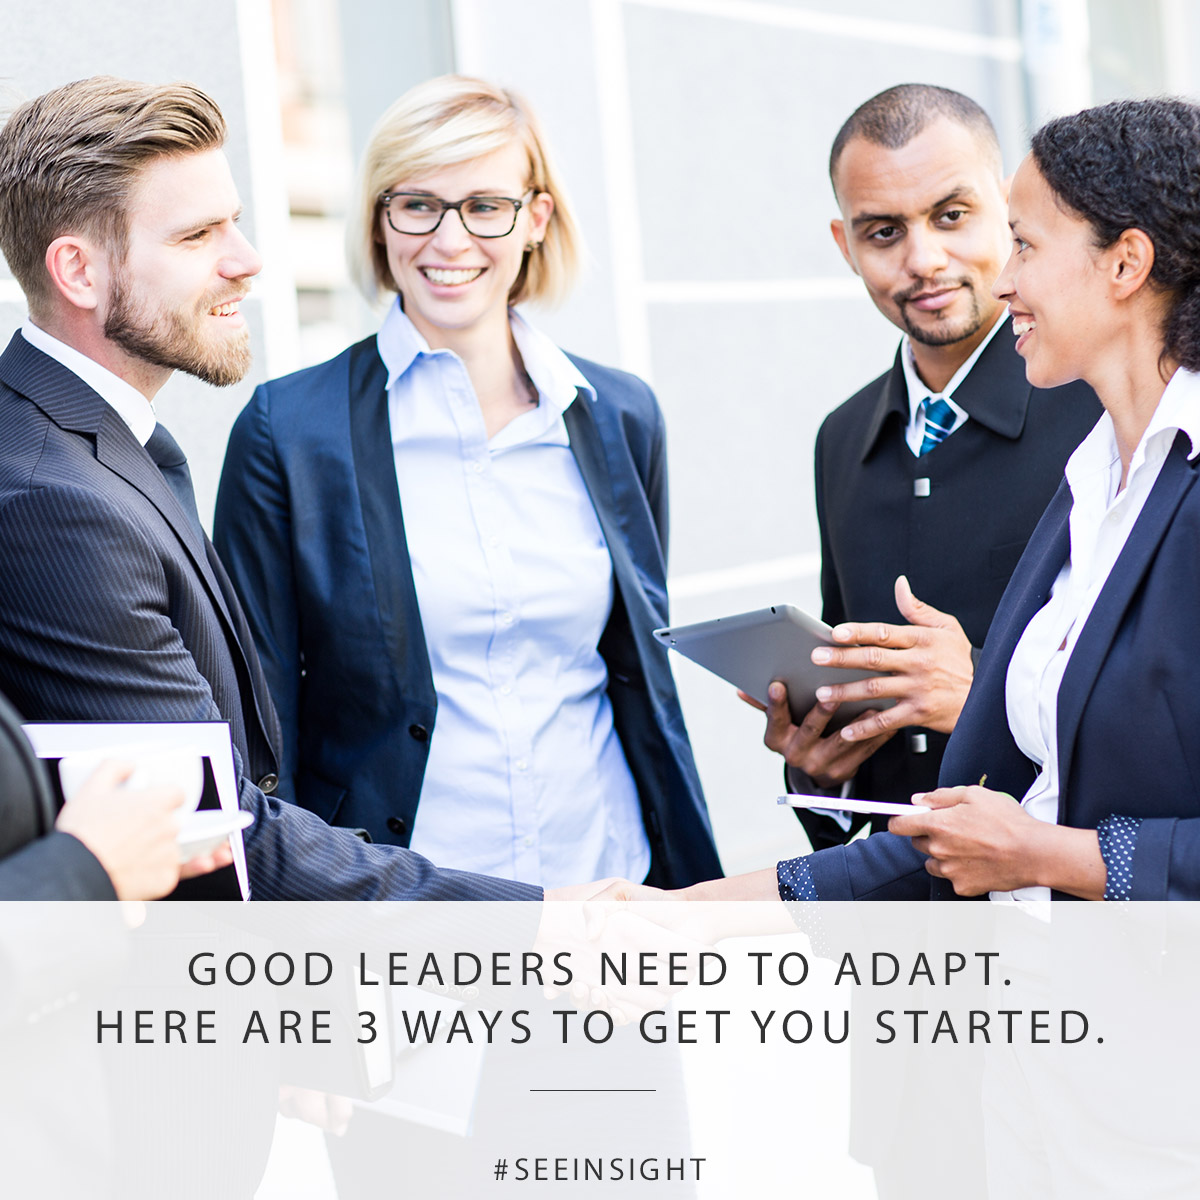 Good Leaders Need to Adapt. Here are 3 Ways to Get You Started.